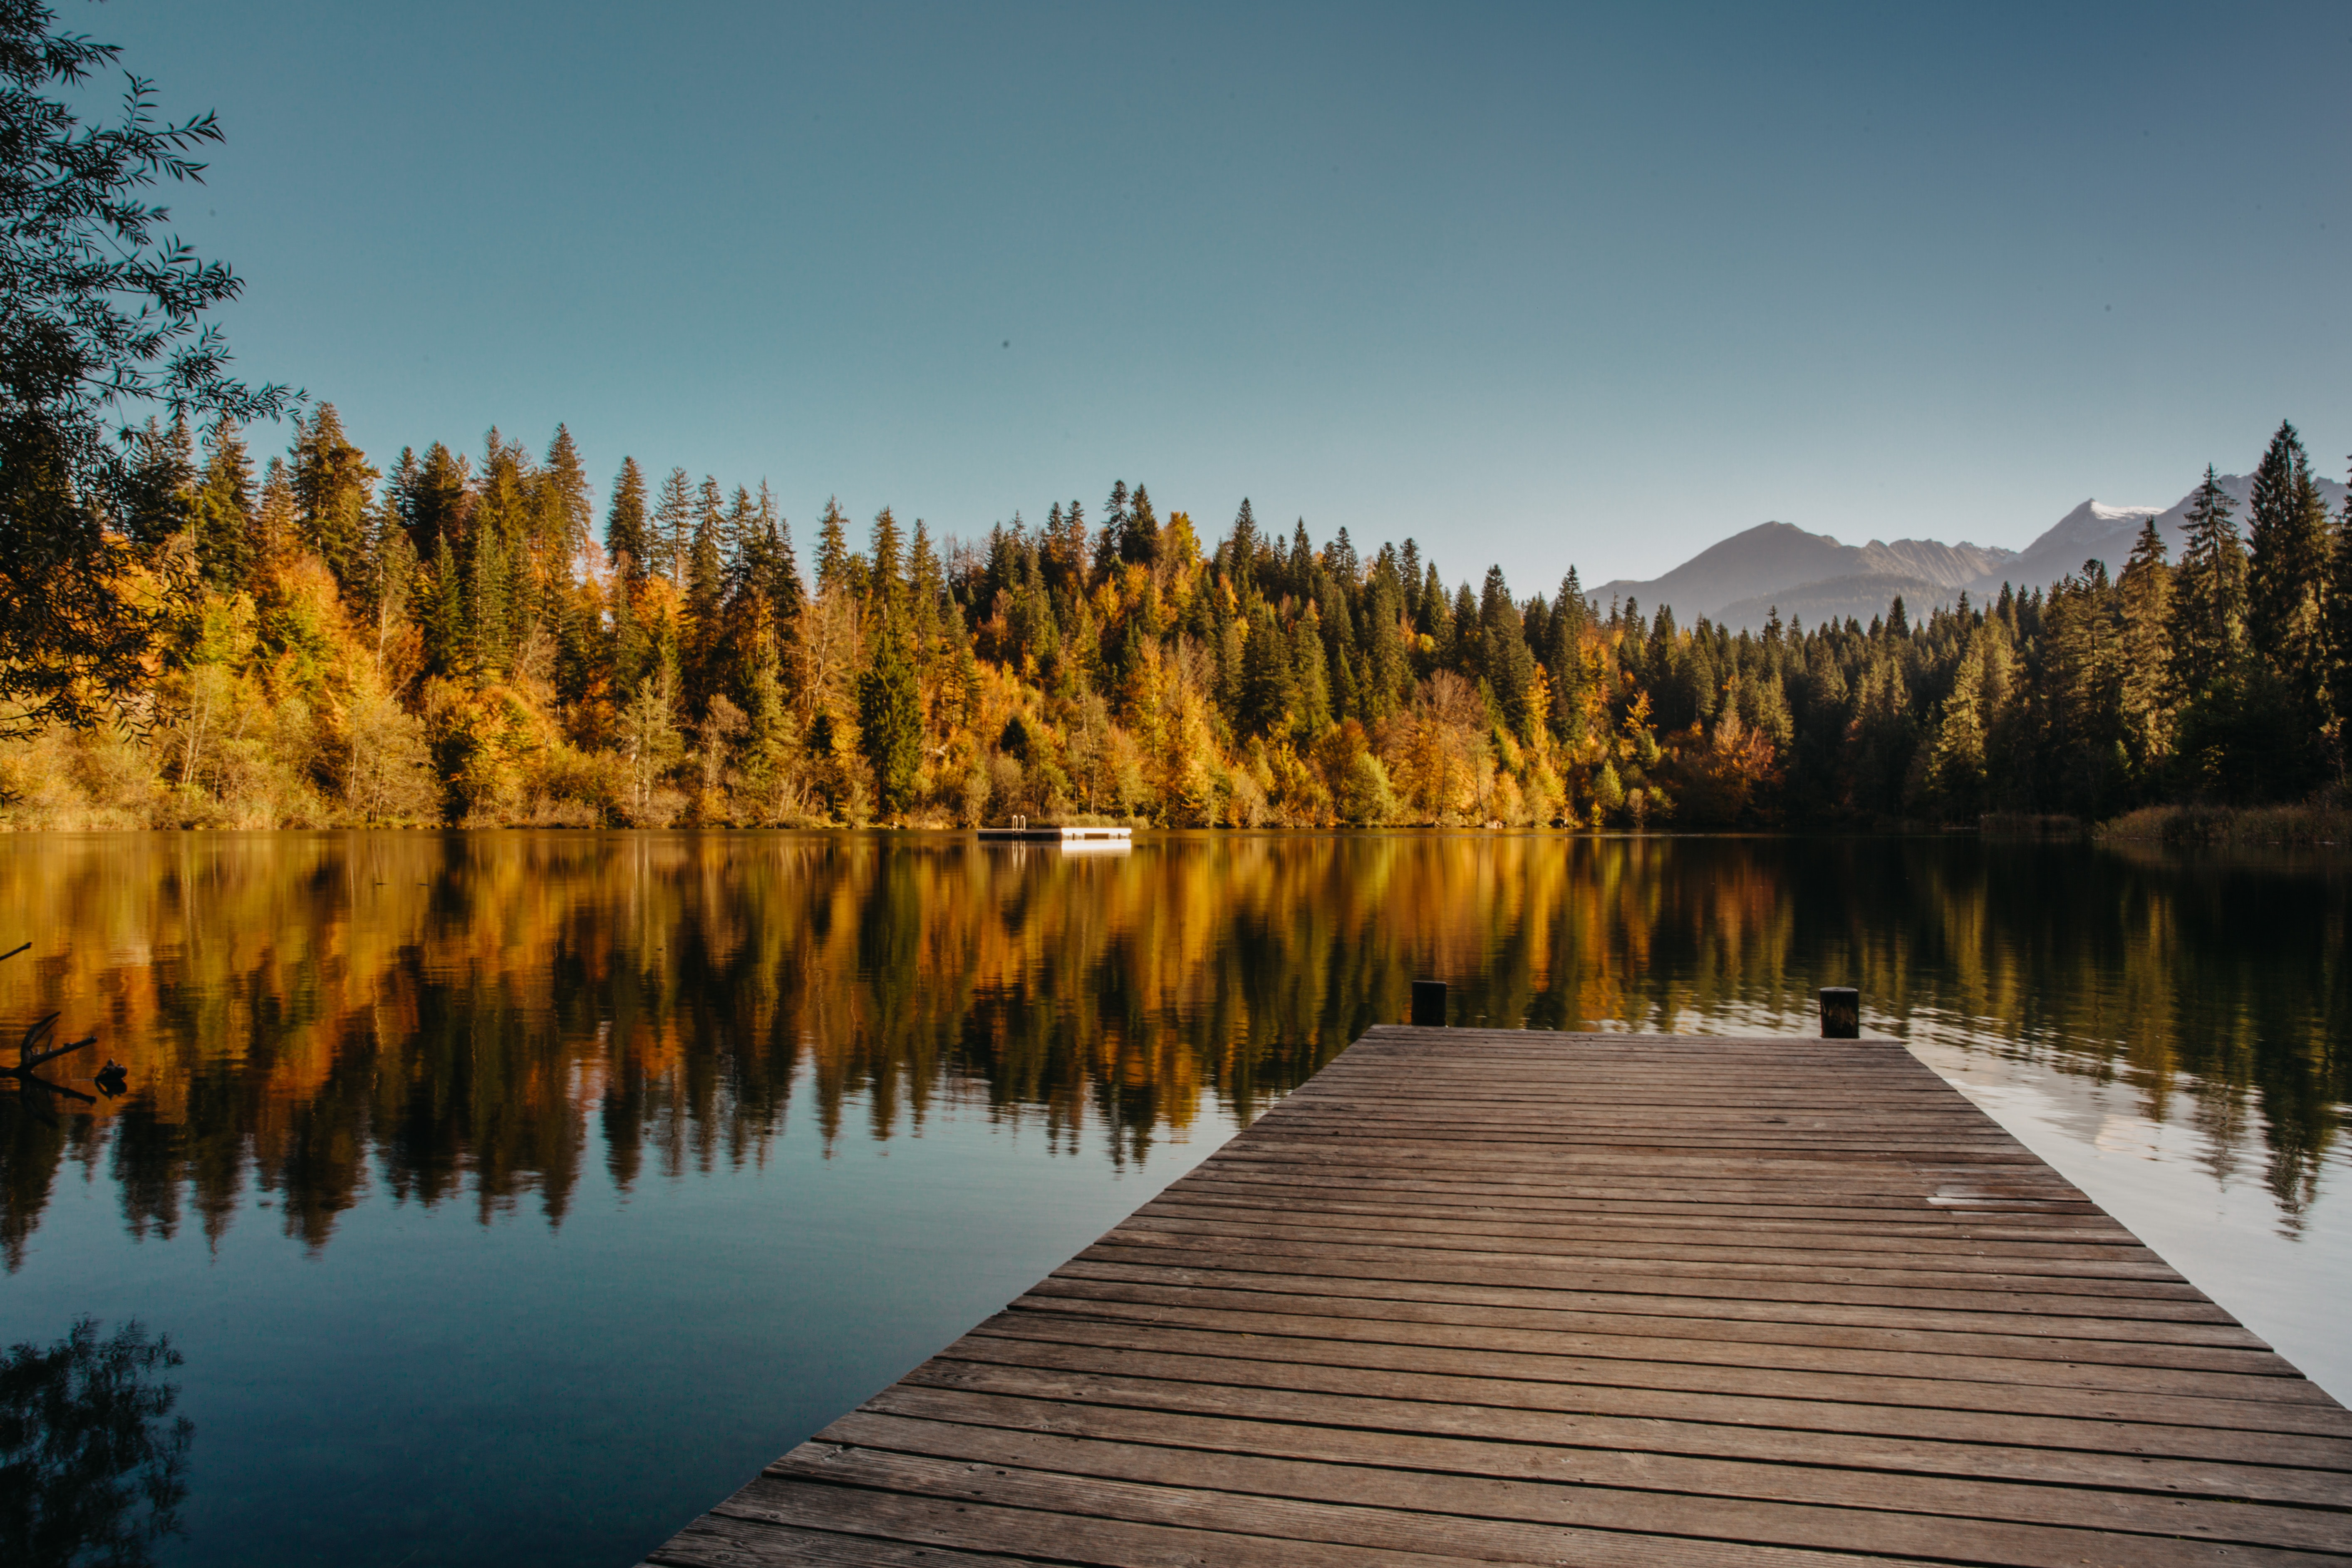 wooden dock over body of water